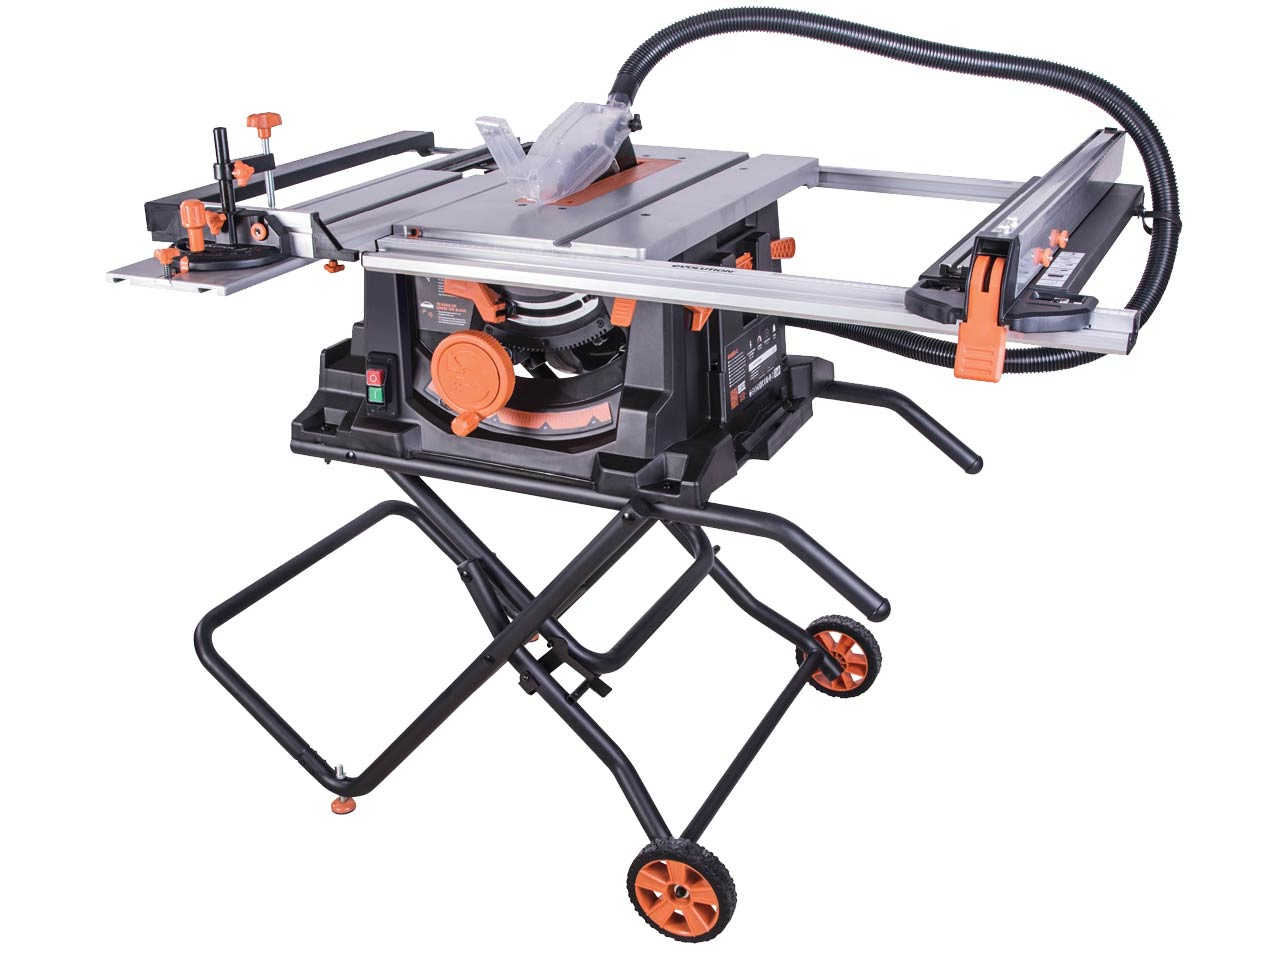 Scheppach hs100s 230v 10in table saw for 110v table saw